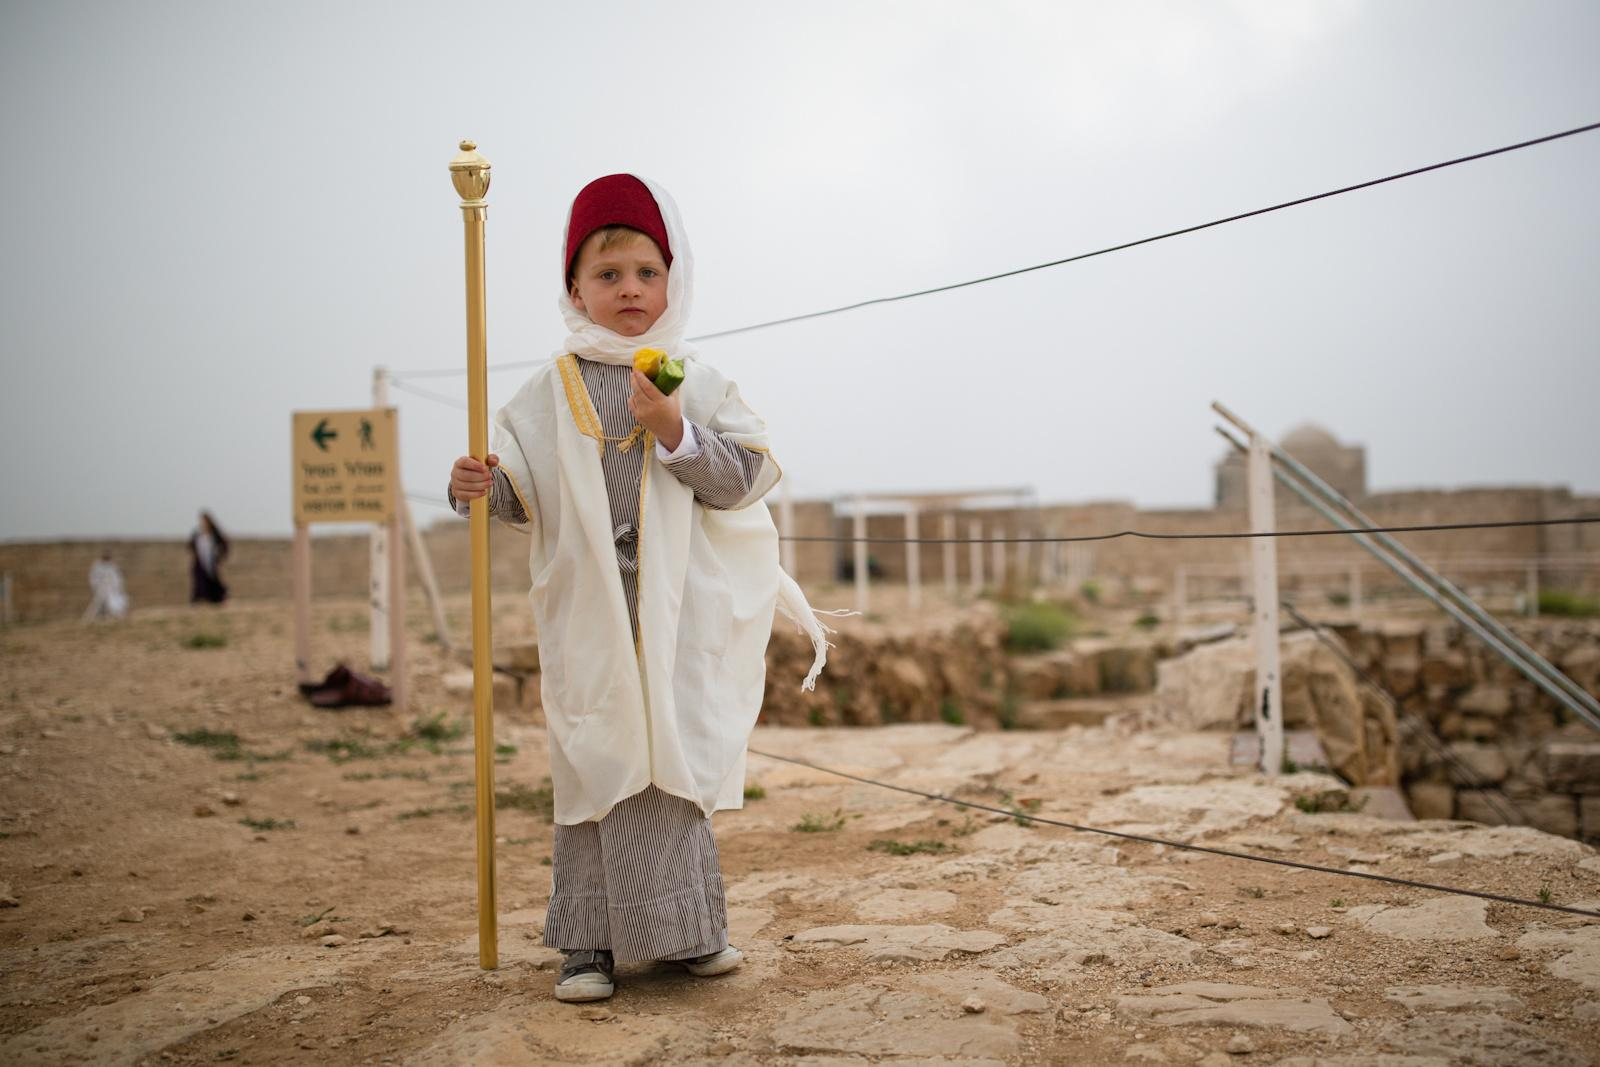 NABLUS, PALESTINIAN TERRITORIES - APRIL 27, 2016: A Samaritan boy takes part in a pilgrimage marking the holiday of Passover at Mount Gerizim on the outskirts of the West City of Nablus April 27, 2016. The Samaritan religion is descended from the ancient Israelite tribes of Menashe and Efraim, and the community numbers today around 700 people, half at Mount Grizim in the West Bank and the others in Holon near Tel Aviv in Israel.